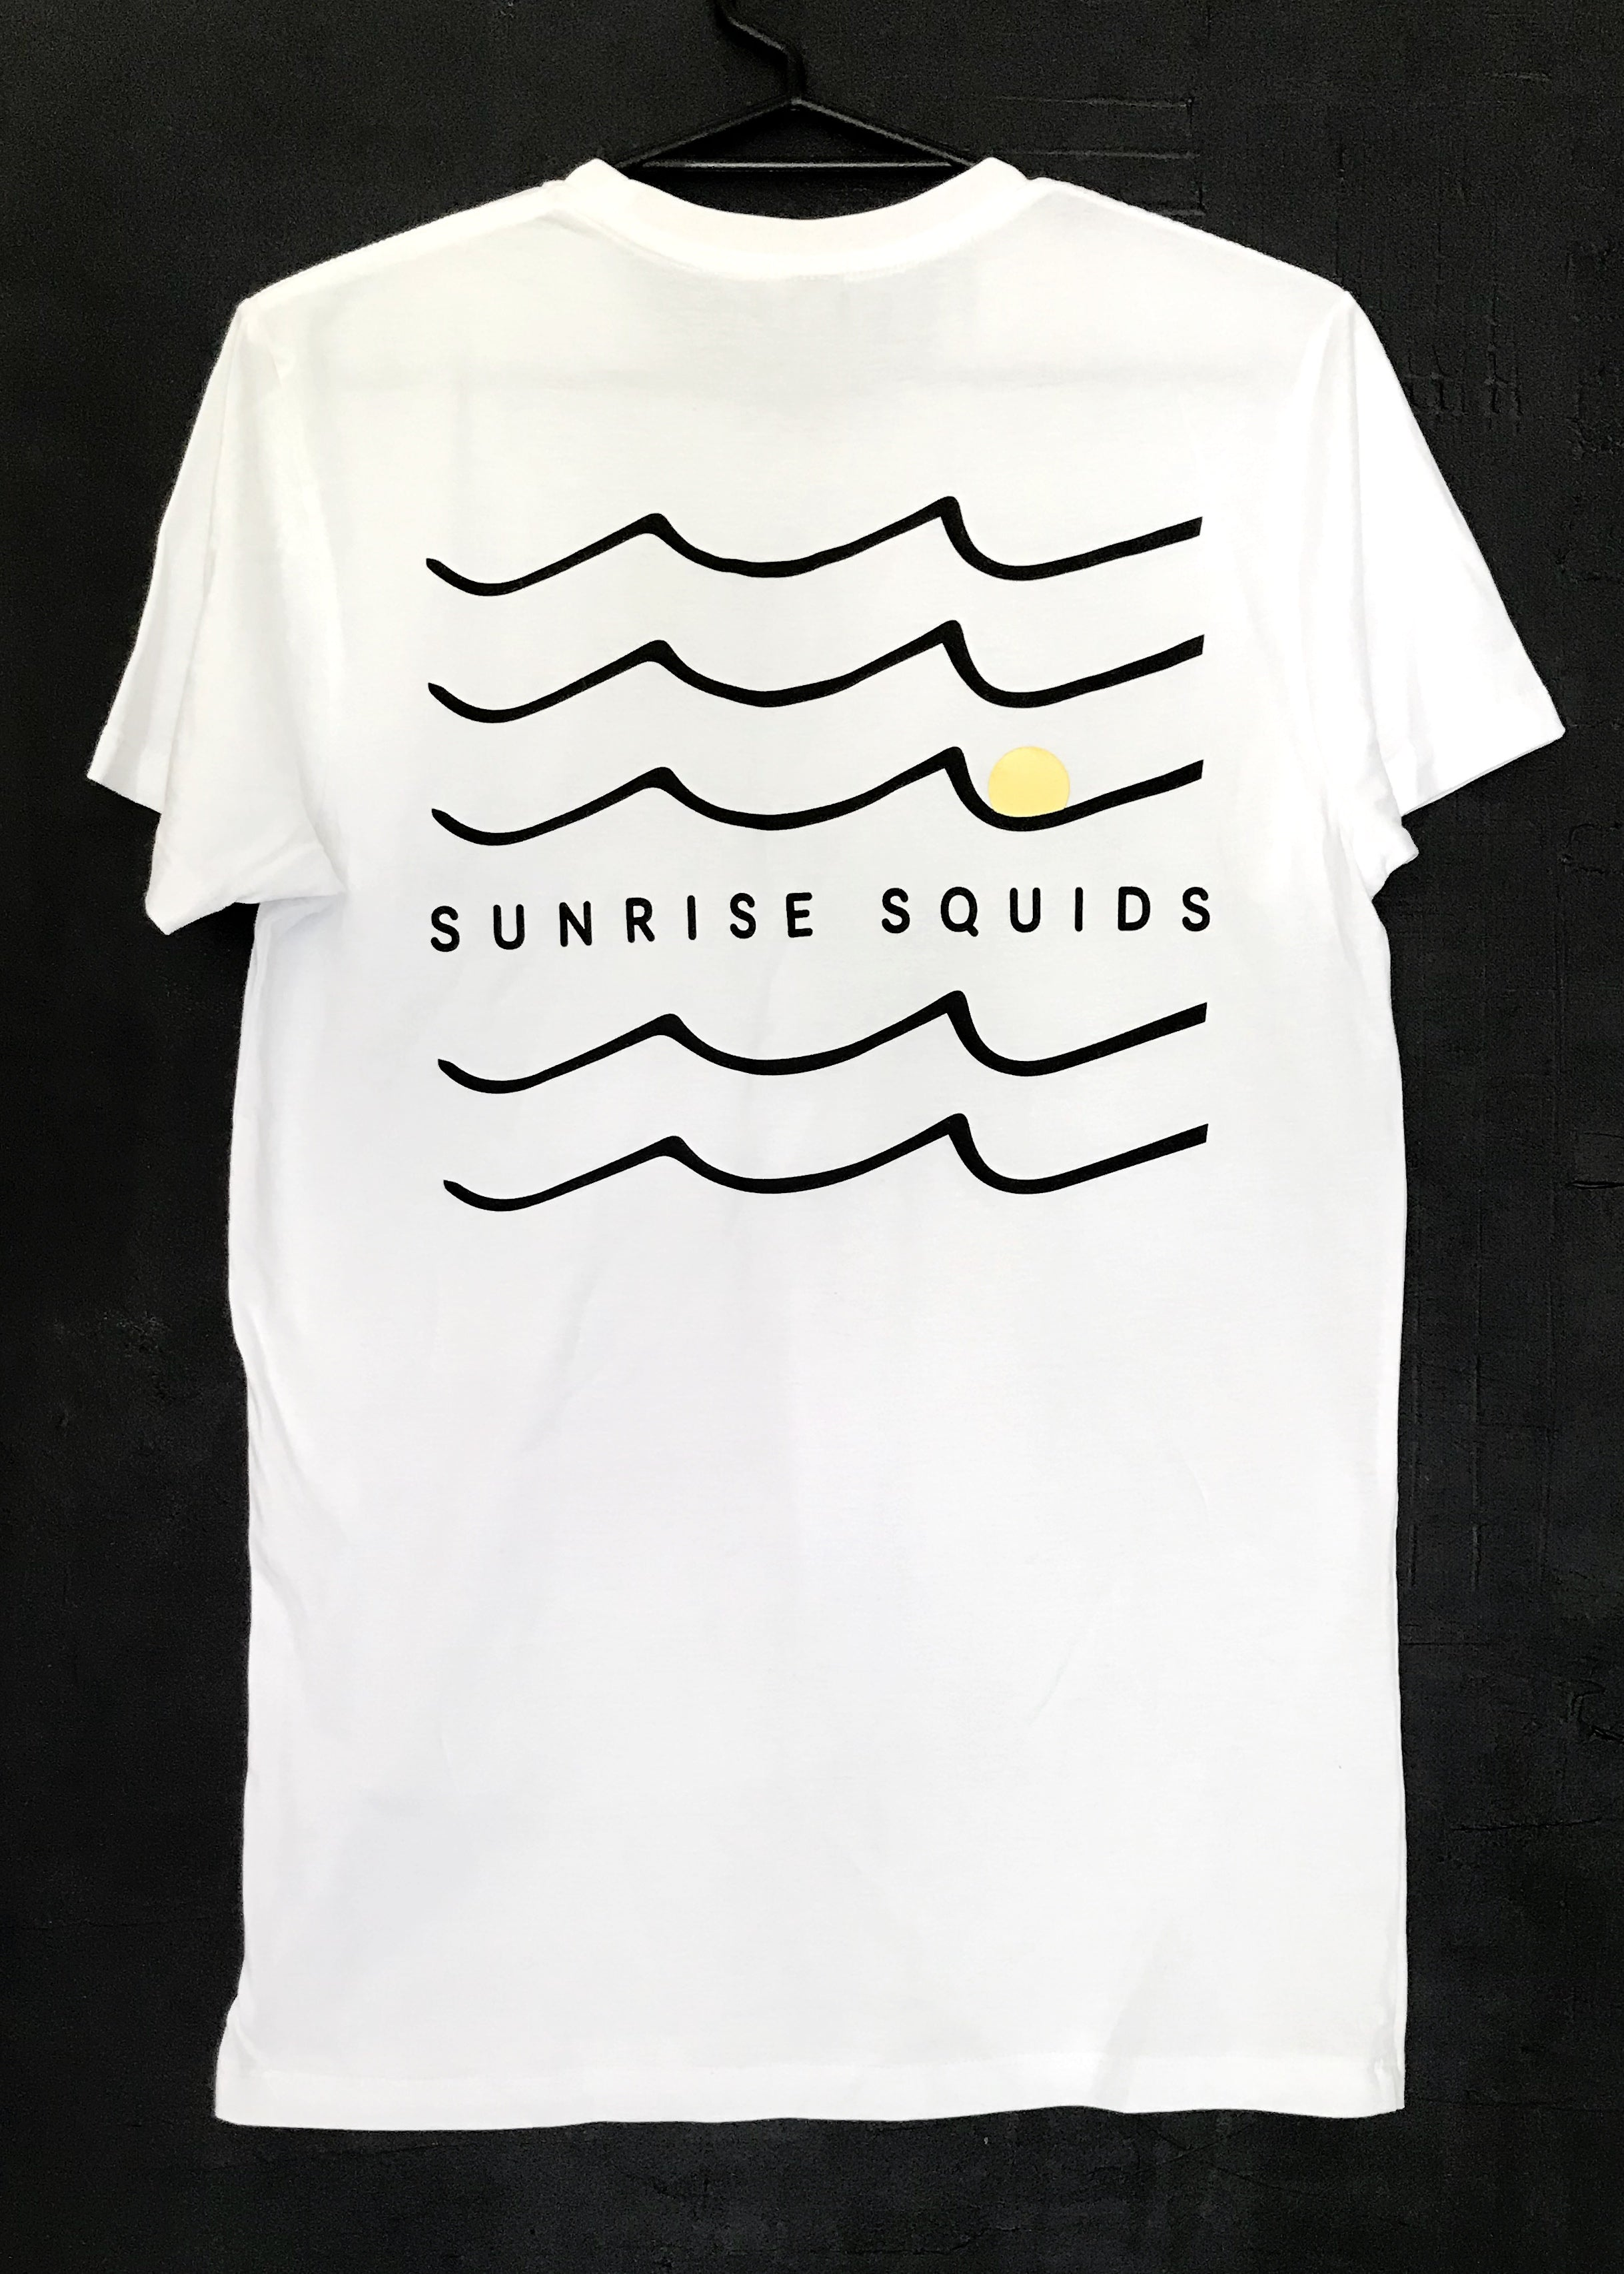 SUNRISE SQUIDS T-SHIRT